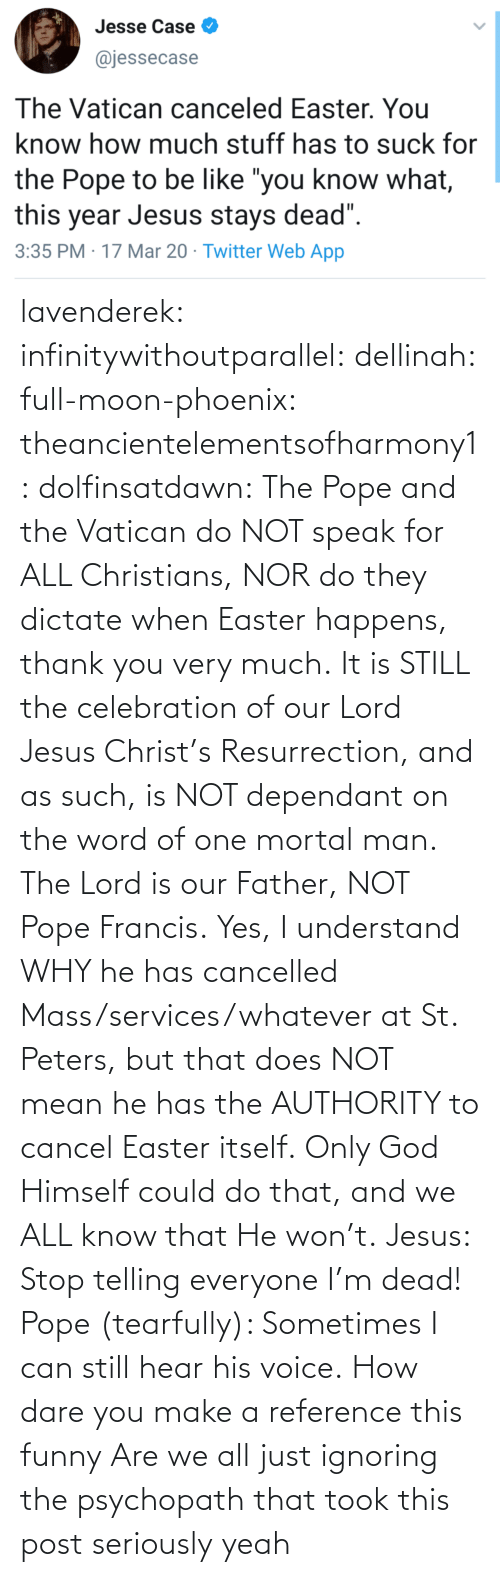 dare: lavenderek: infinitywithoutparallel:  dellinah:  full-moon-phoenix:   theancientelementsofharmony1:  dolfinsatdawn:    The Pope and the Vatican do NOT speak for ALL Christians, NOR do they dictate when Easter happens, thank you very much. It is STILL the celebration of our Lord Jesus Christ's Resurrection, and as such, is NOT dependant on the word of one mortal man. The Lord is our Father, NOT Pope Francis. Yes, I understand WHY he has cancelled Mass/services/whatever at St. Peters, but that does NOT mean he has the AUTHORITY to cancel Easter itself. Only God Himself could do that, and we ALL know that He won't.    Jesus: Stop telling everyone I'm dead! Pope (tearfully): Sometimes I can still hear his voice.    How dare you make a reference this funny    Are we all just ignoring the psychopath that took this post seriously     yeah